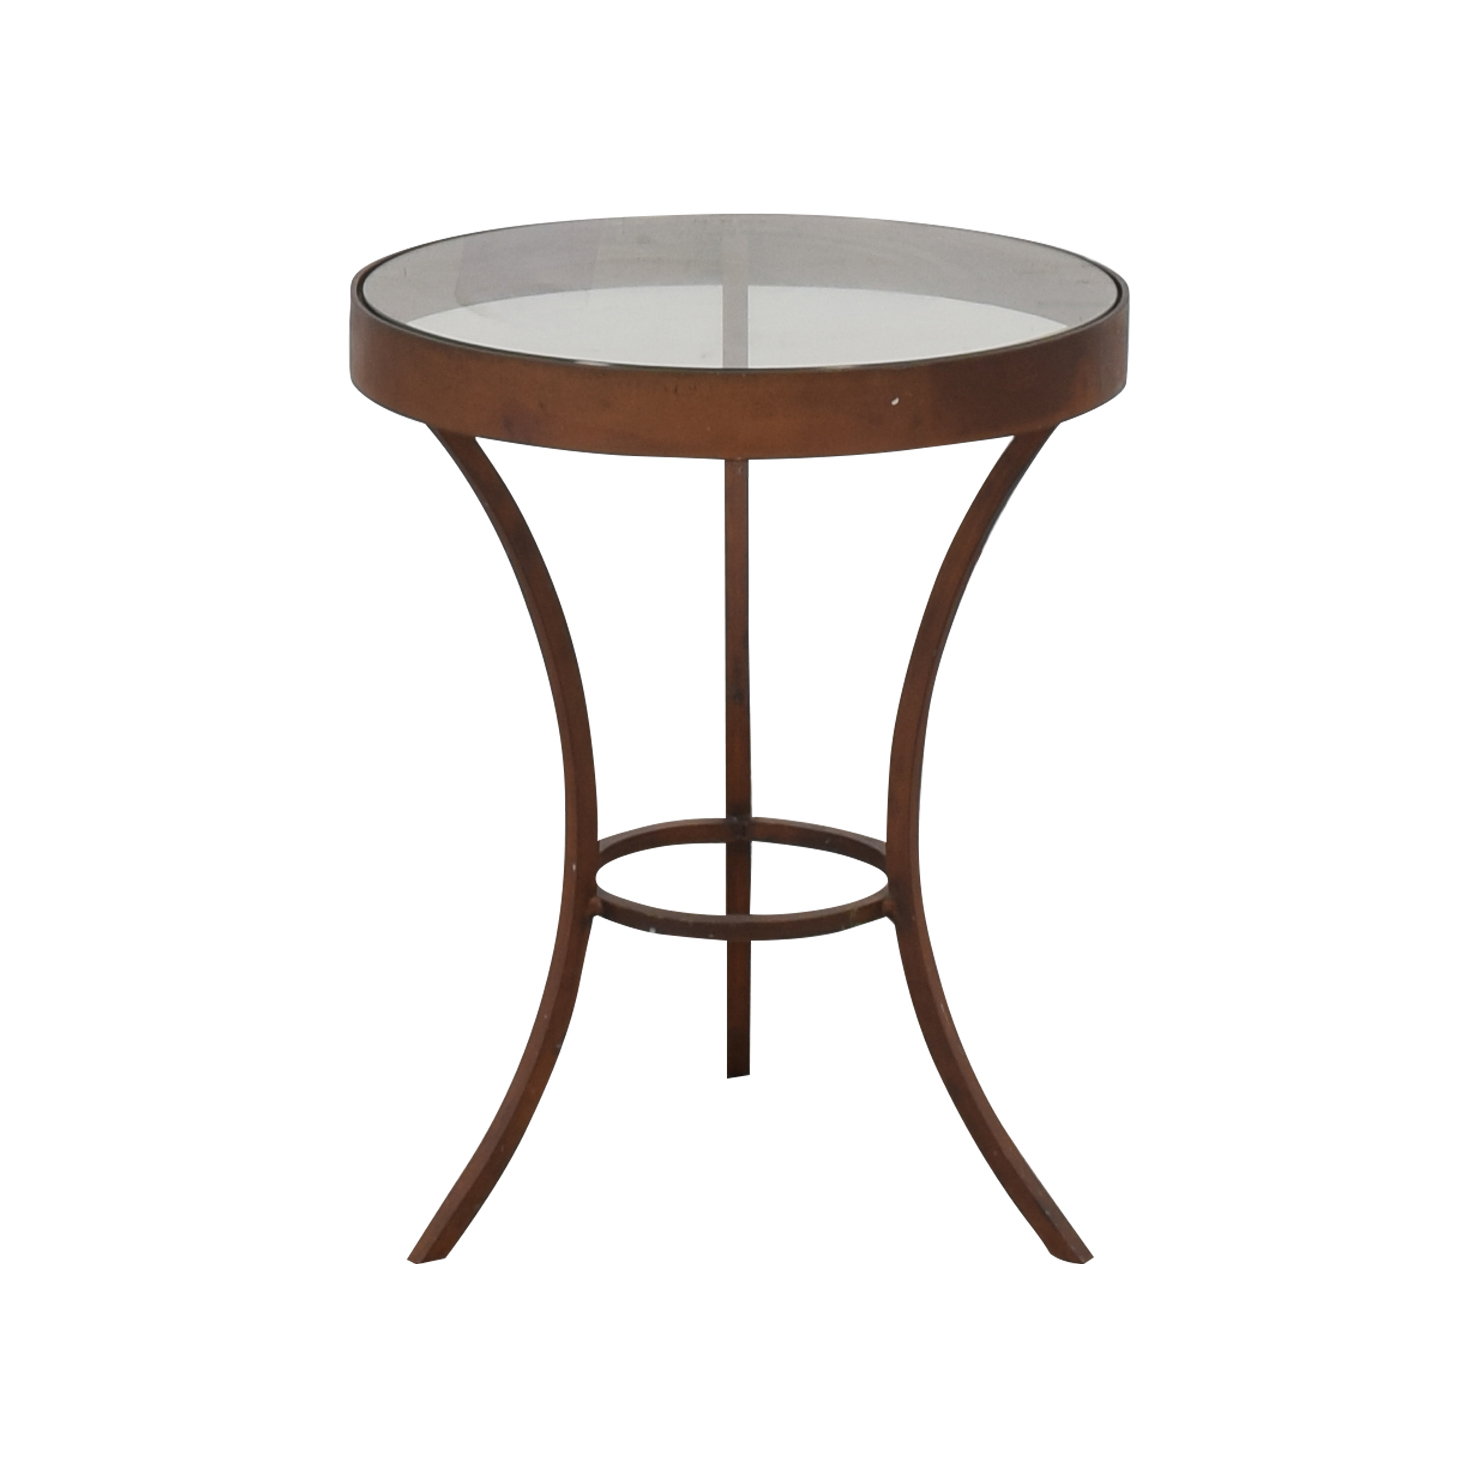 buy Crate & Barrel Crate & Barrel Side Table with Glass Top online